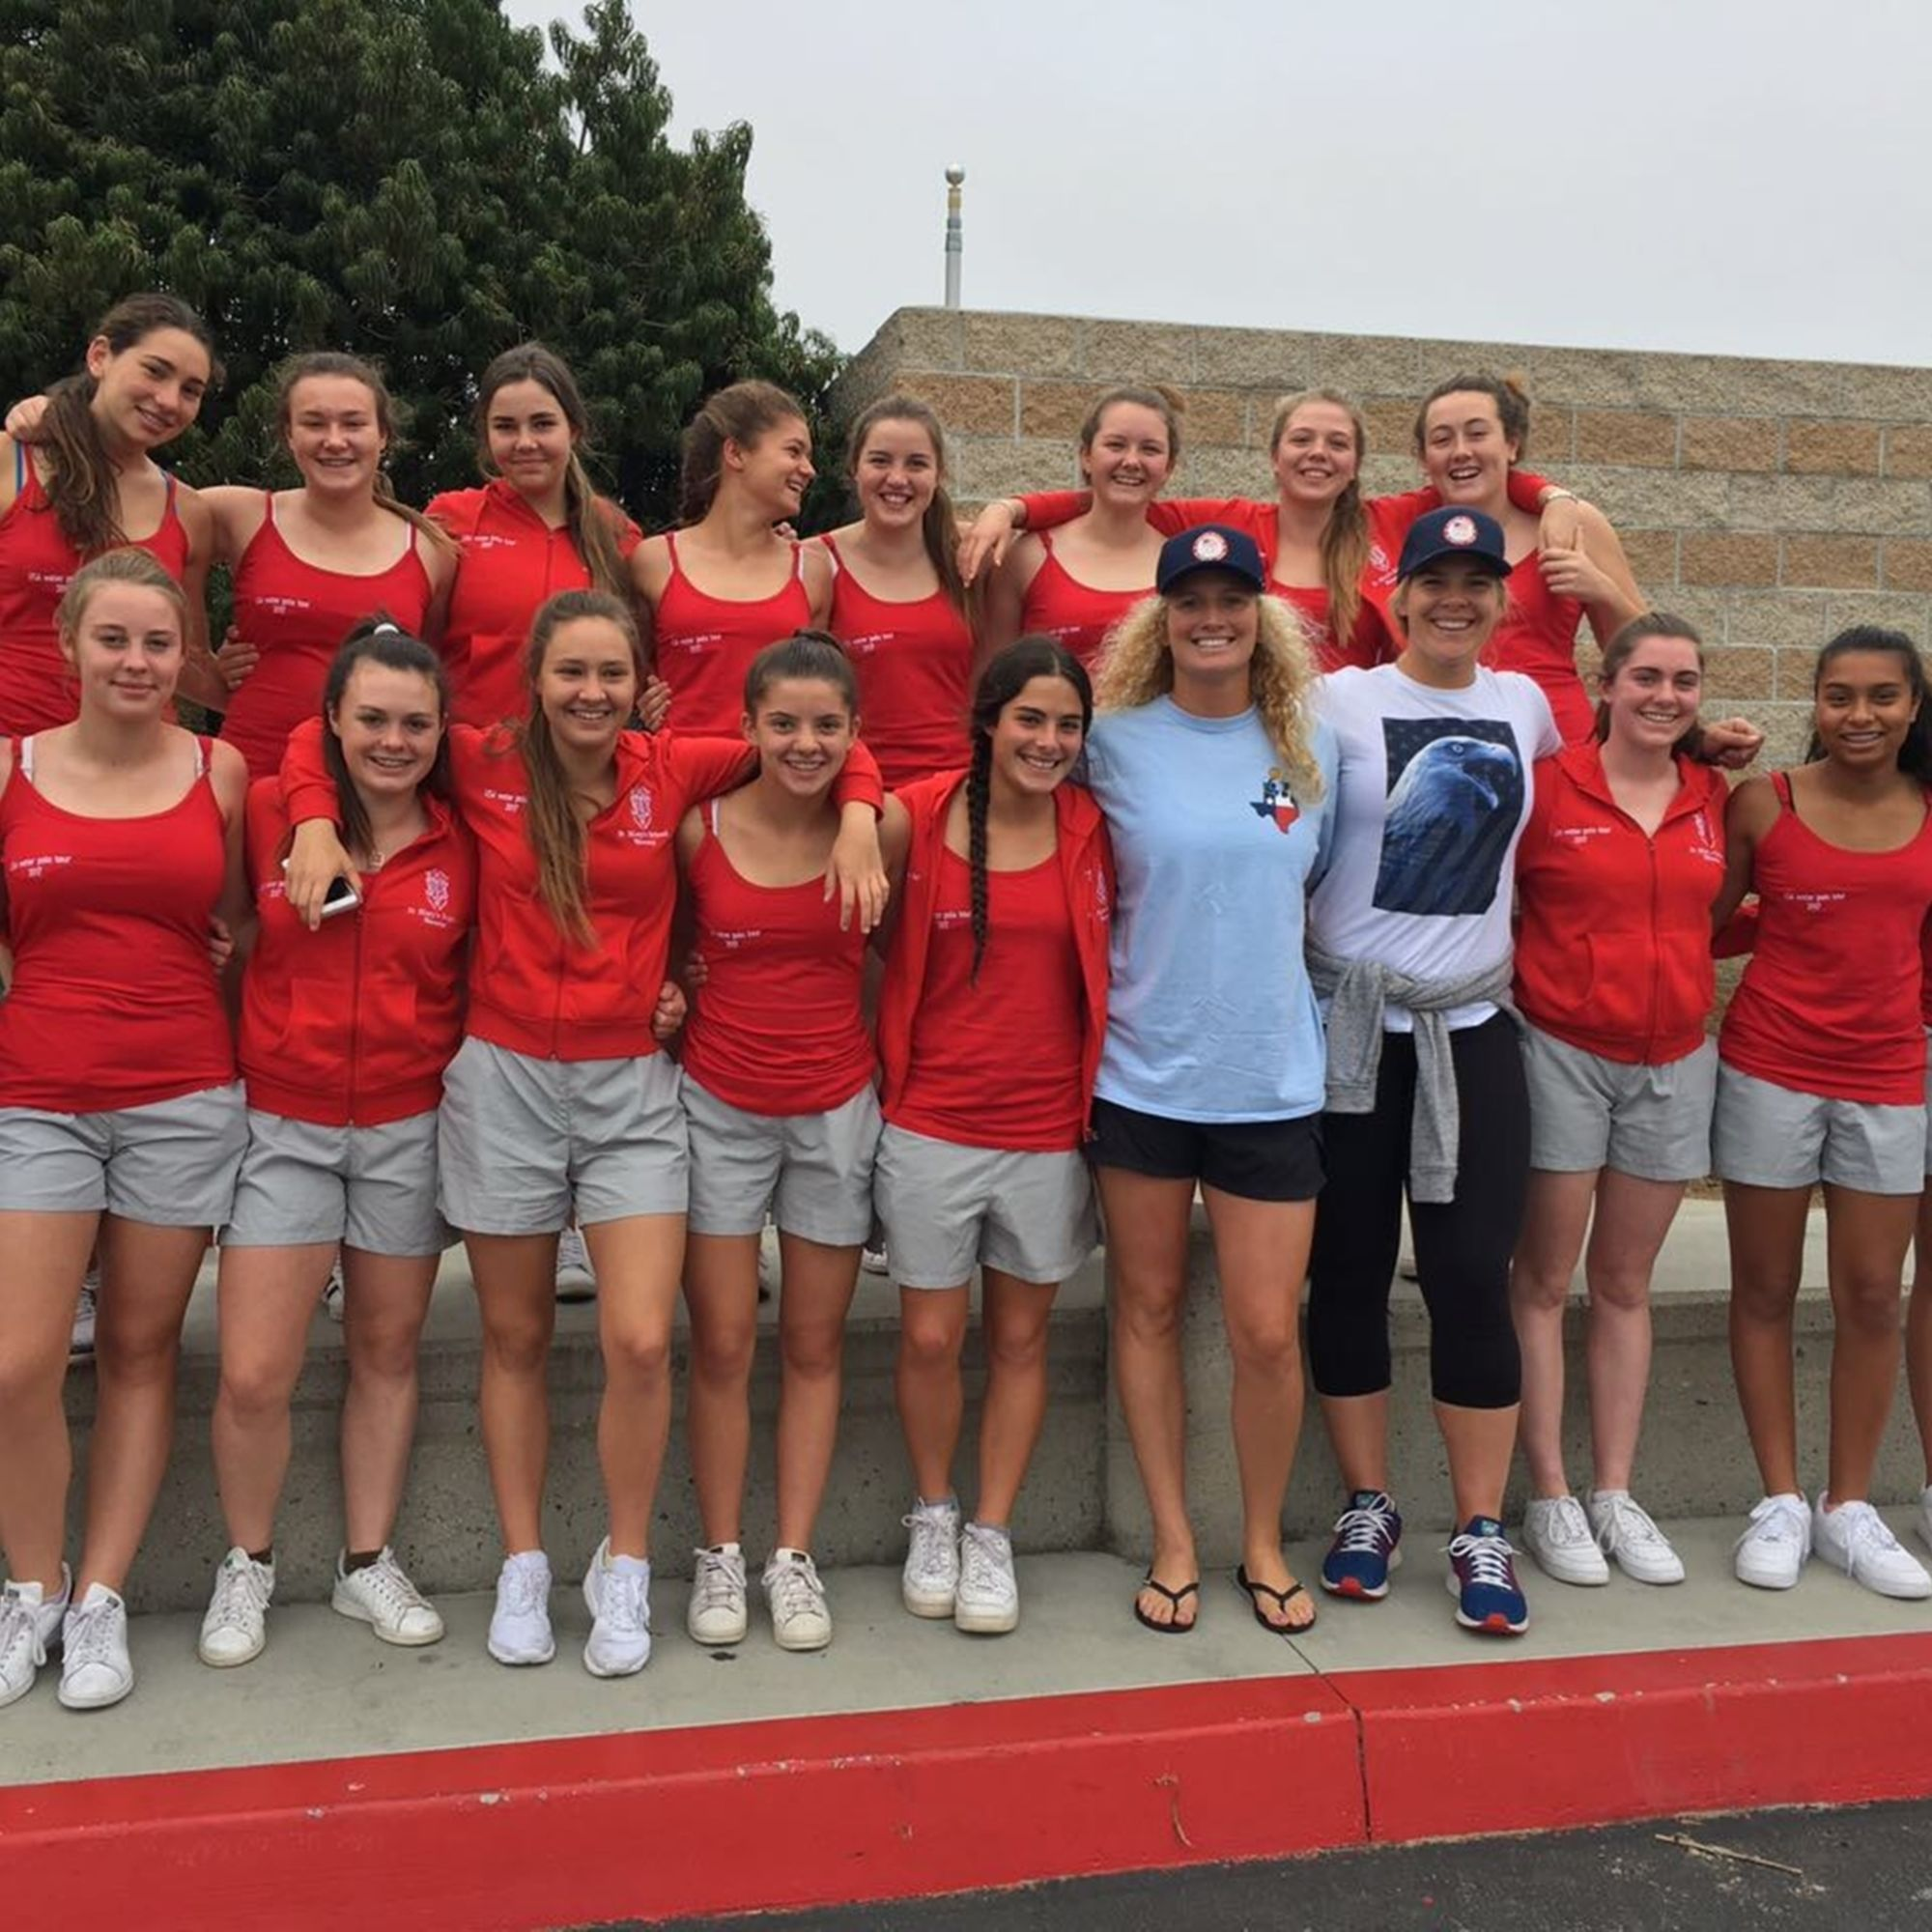 Usa water polo tour the st marys girls with the american olympians